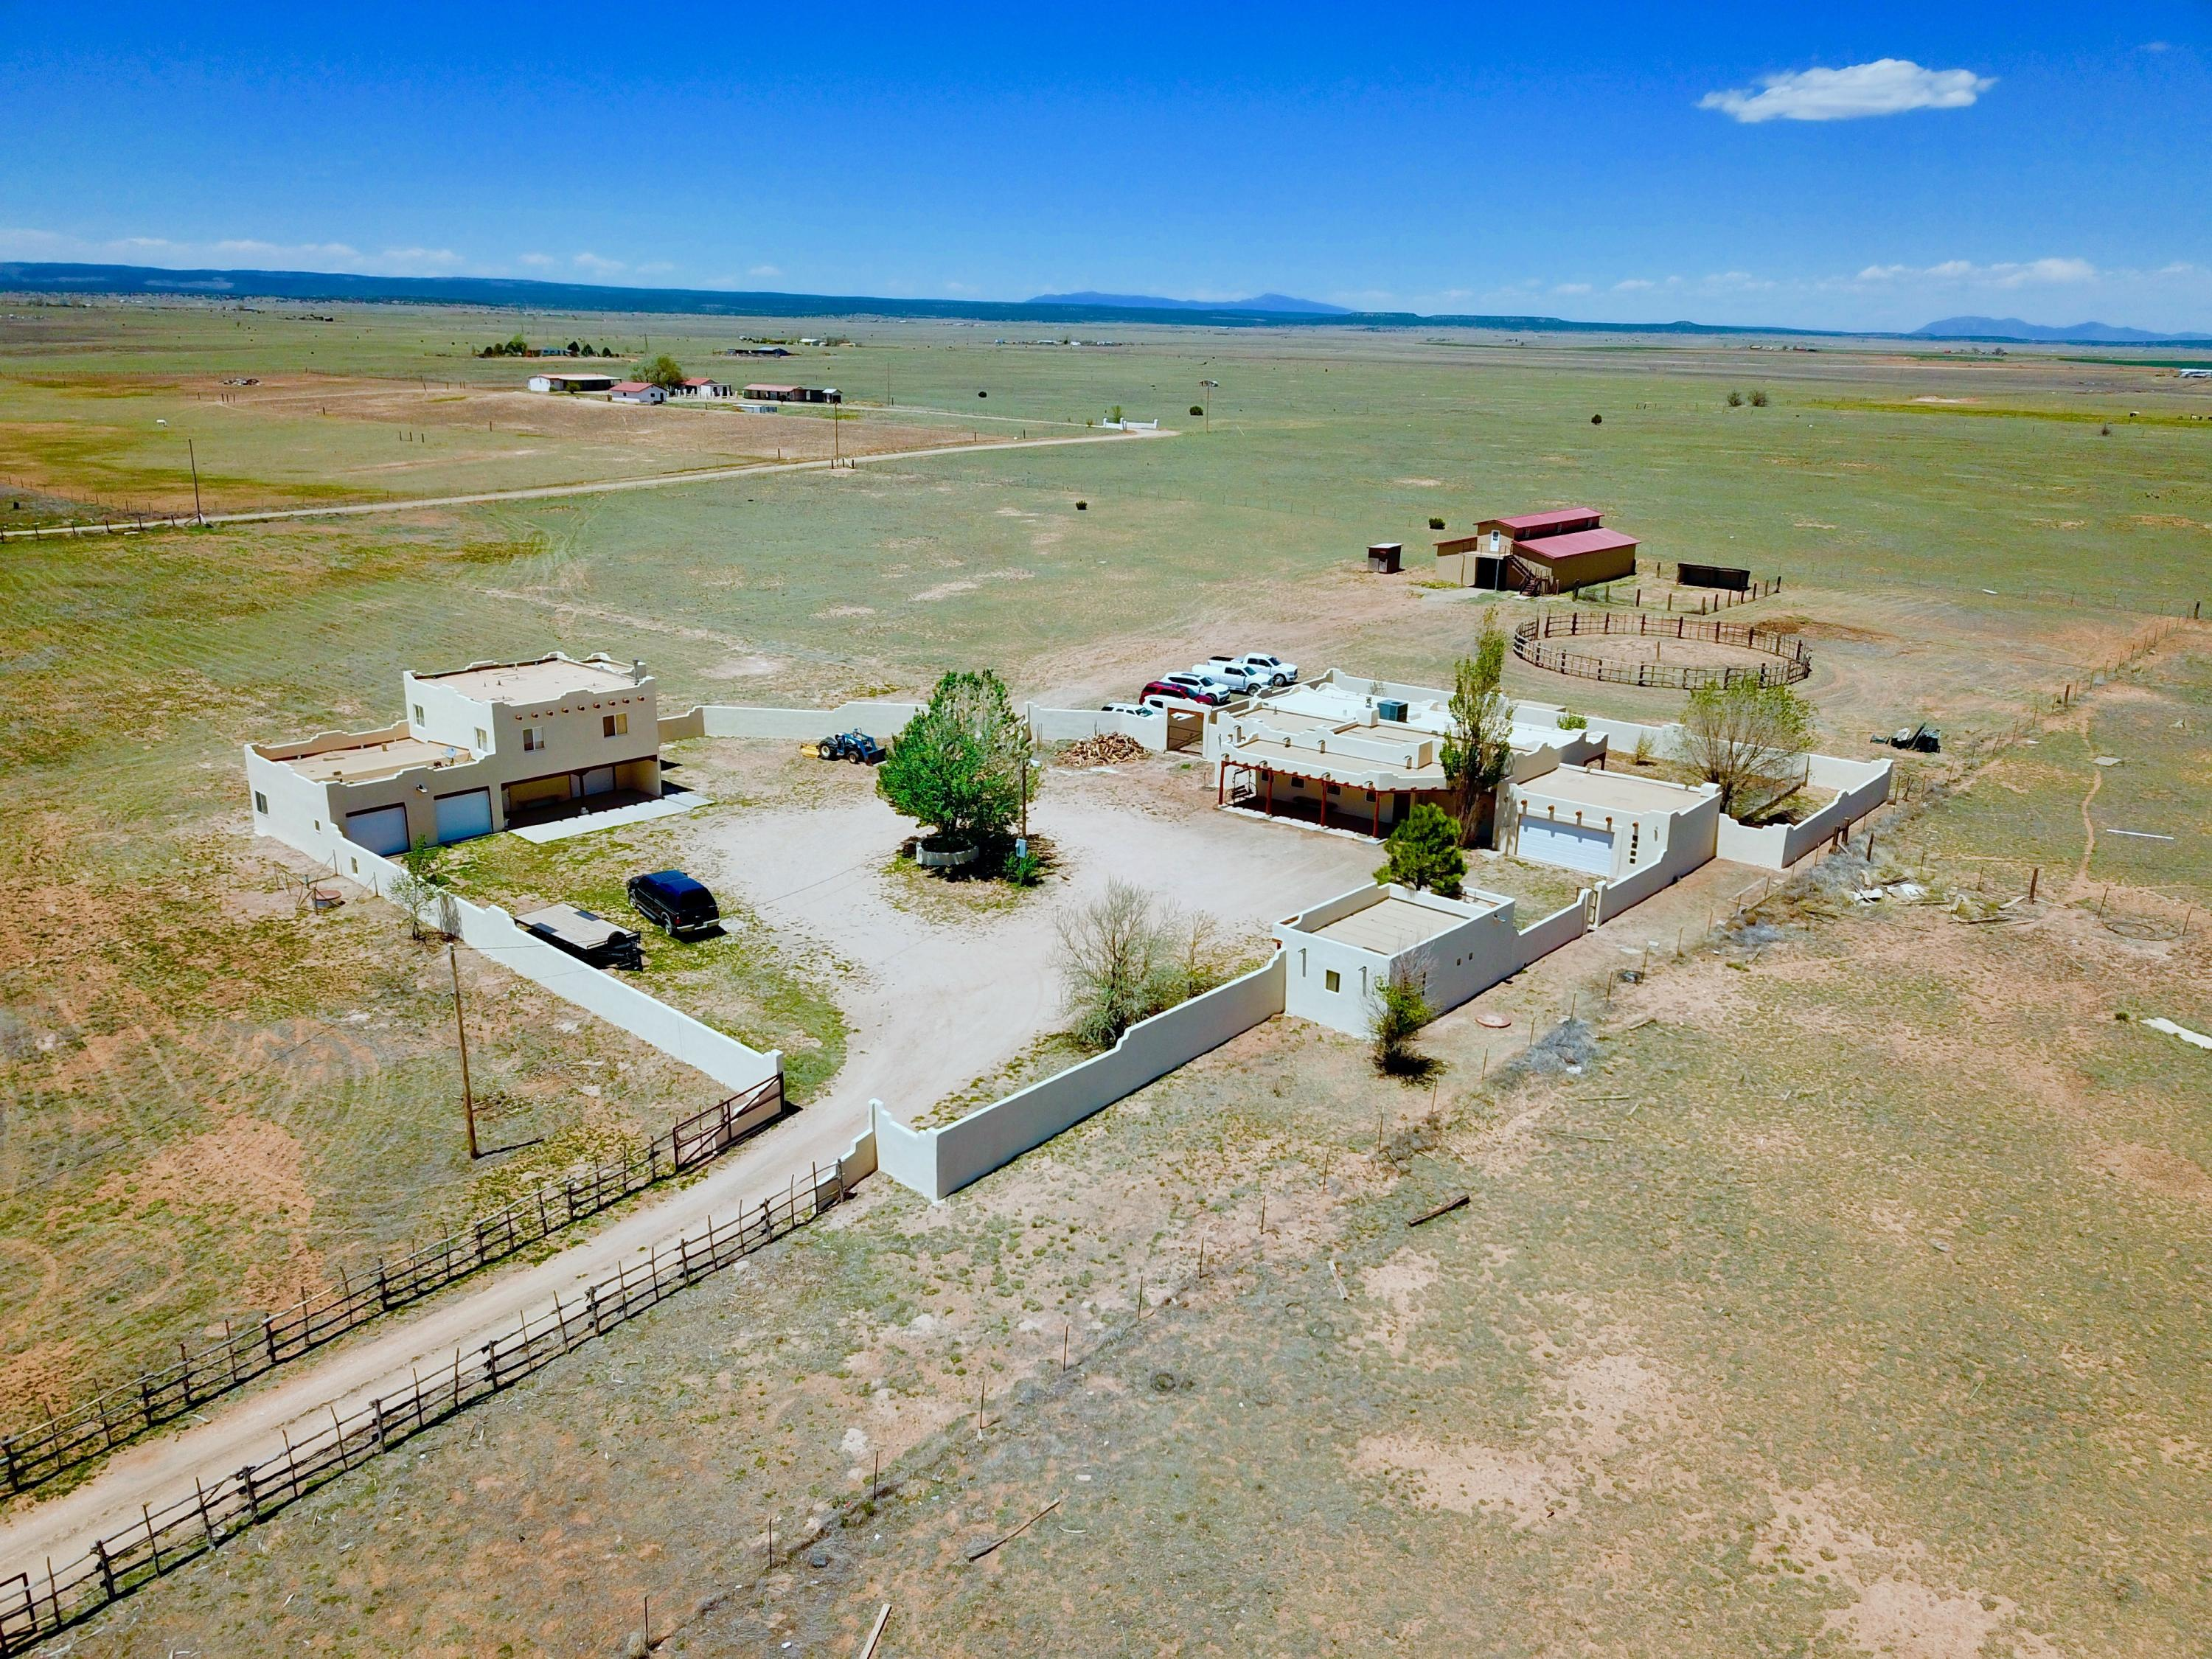 This New Mexico Pueble Style Estate is a horse property that sits on 10 acres of grassland and features 2277 sf of living space in the main house, 792 sf 2-bedroom guest house and 425 sf in a detached office and craft room for a total of 3494 sf of total living space. Horse facilities include a 40x60 barn with an upper level that measures 12x60 and a round pen. The property is fully fenced and cross fenced. The Cibola National Forest is less than 30 minutes away, Albuquerque is about 40 minutes and Santa Fe an hour.